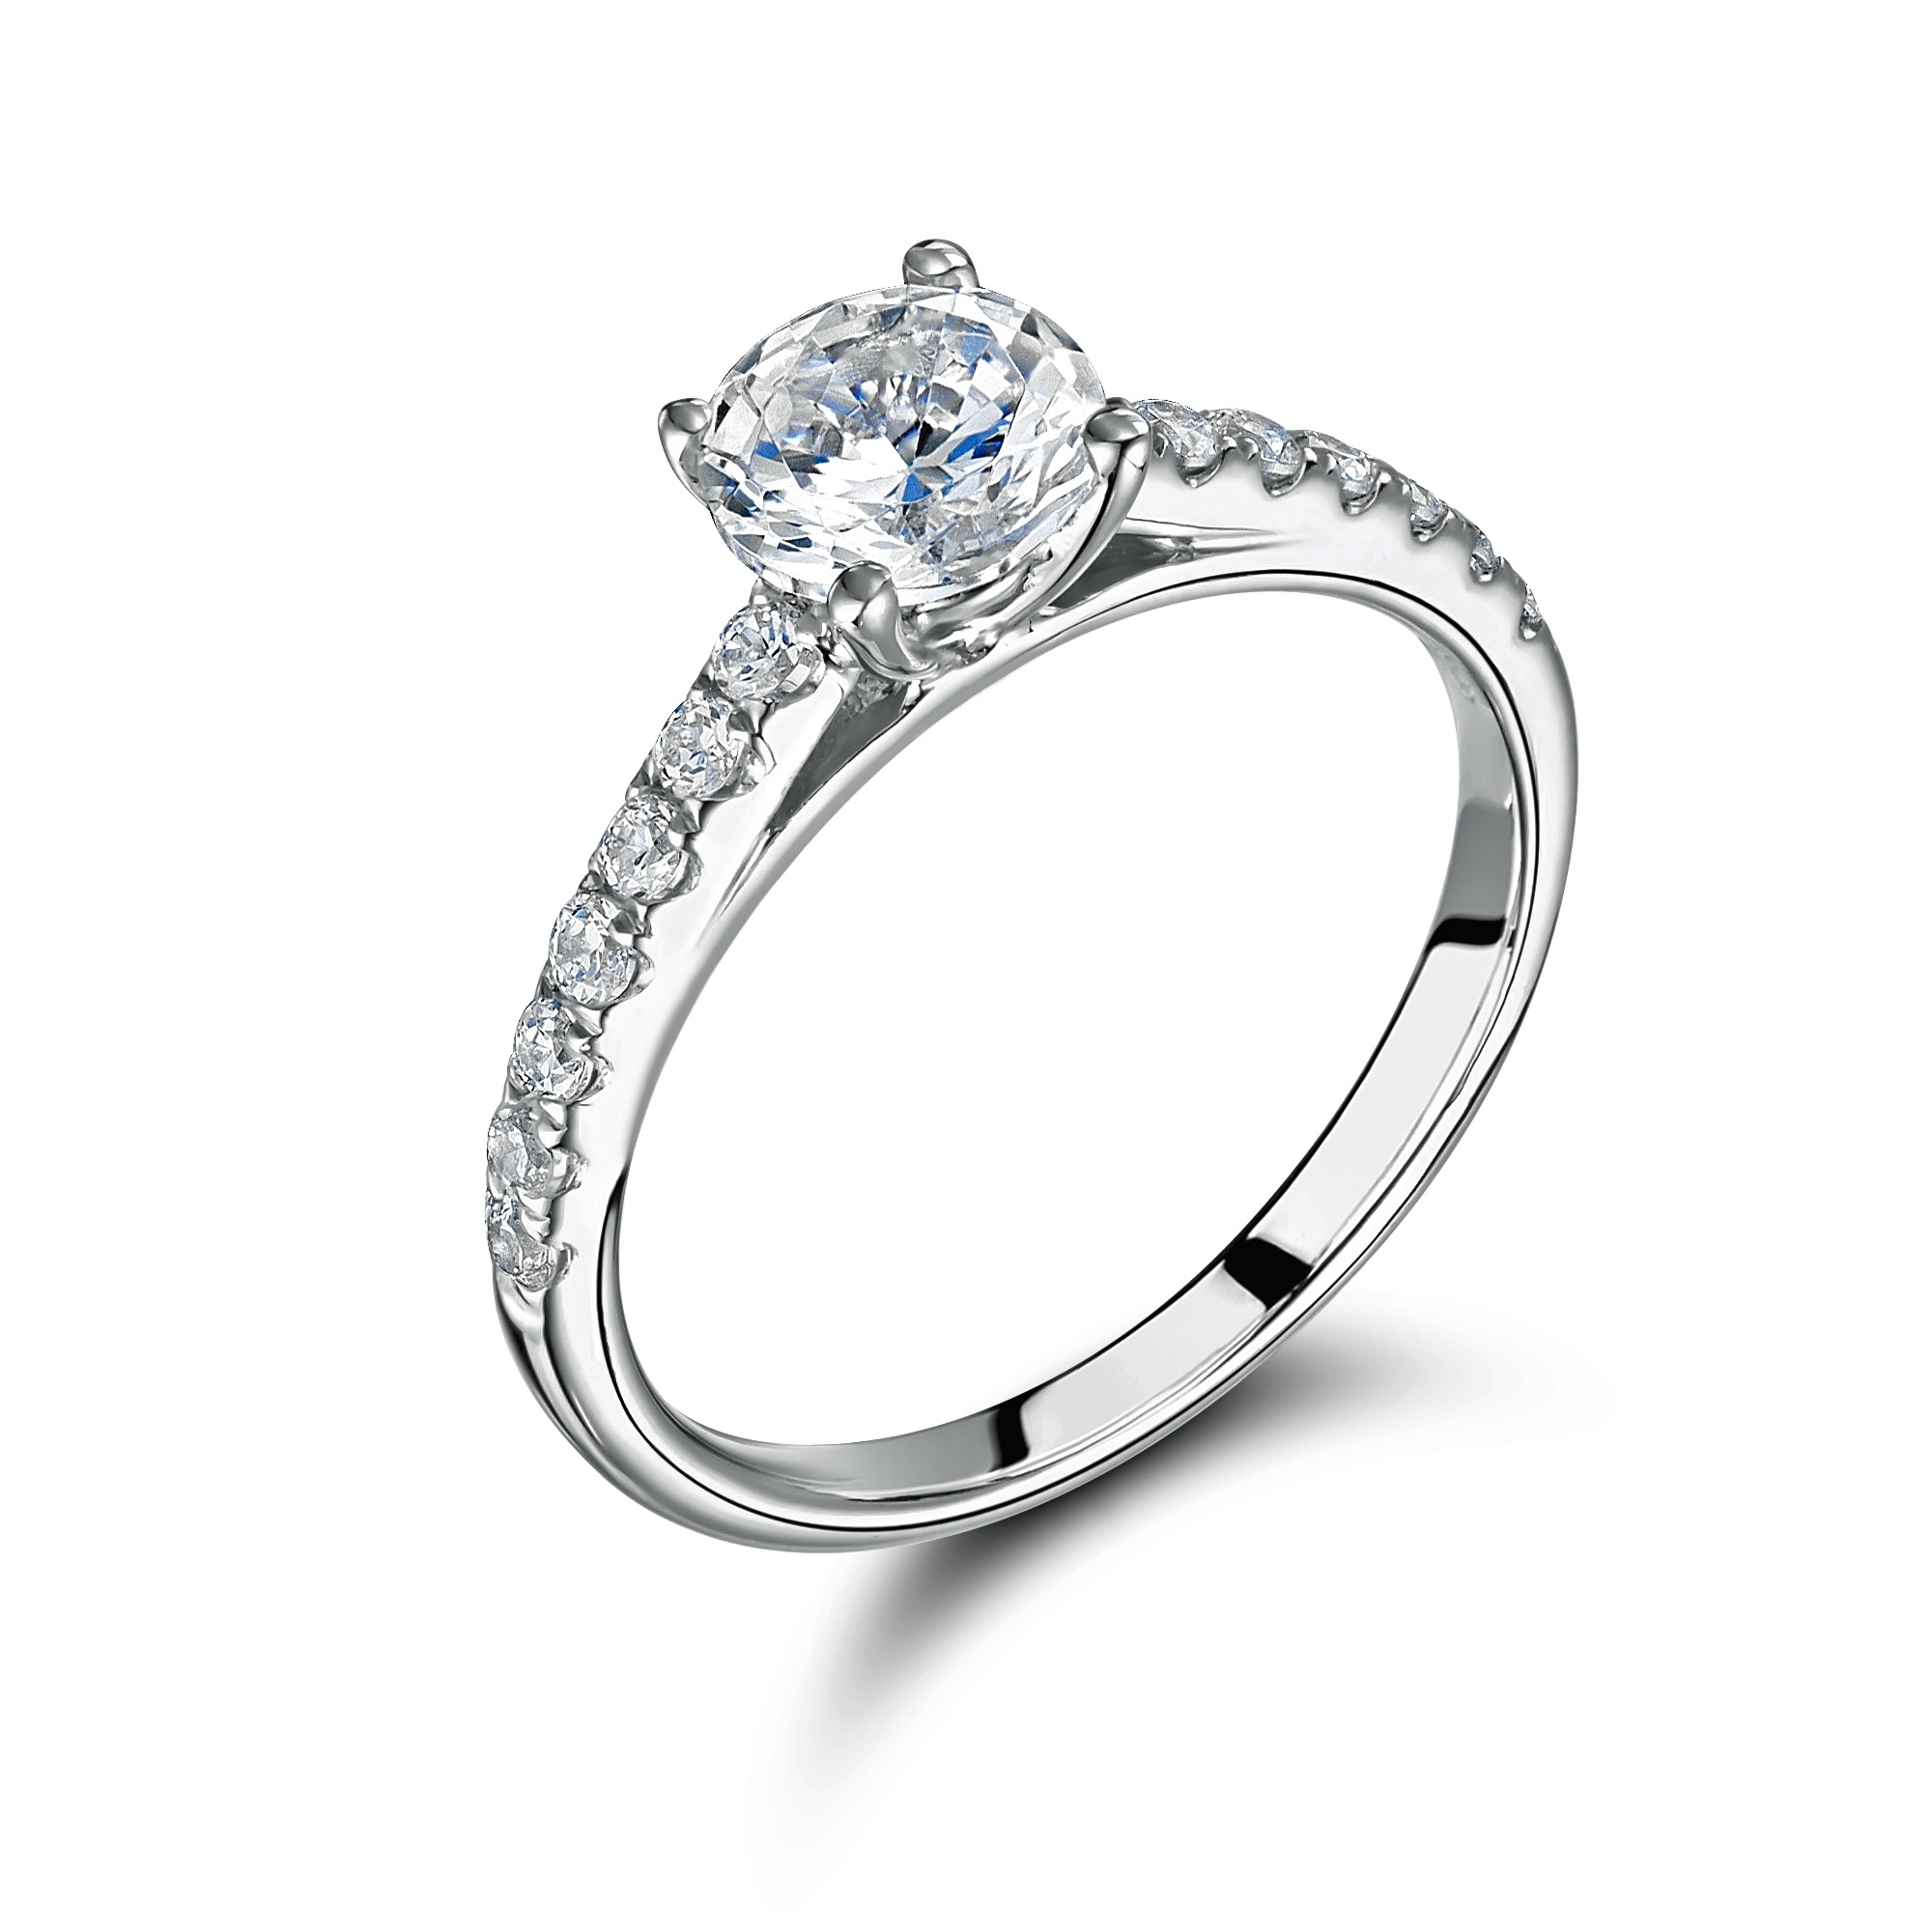 0.33ct Certificated Diamond 18ct White Gold Solitaire Ring With Diamond Shoulders-0